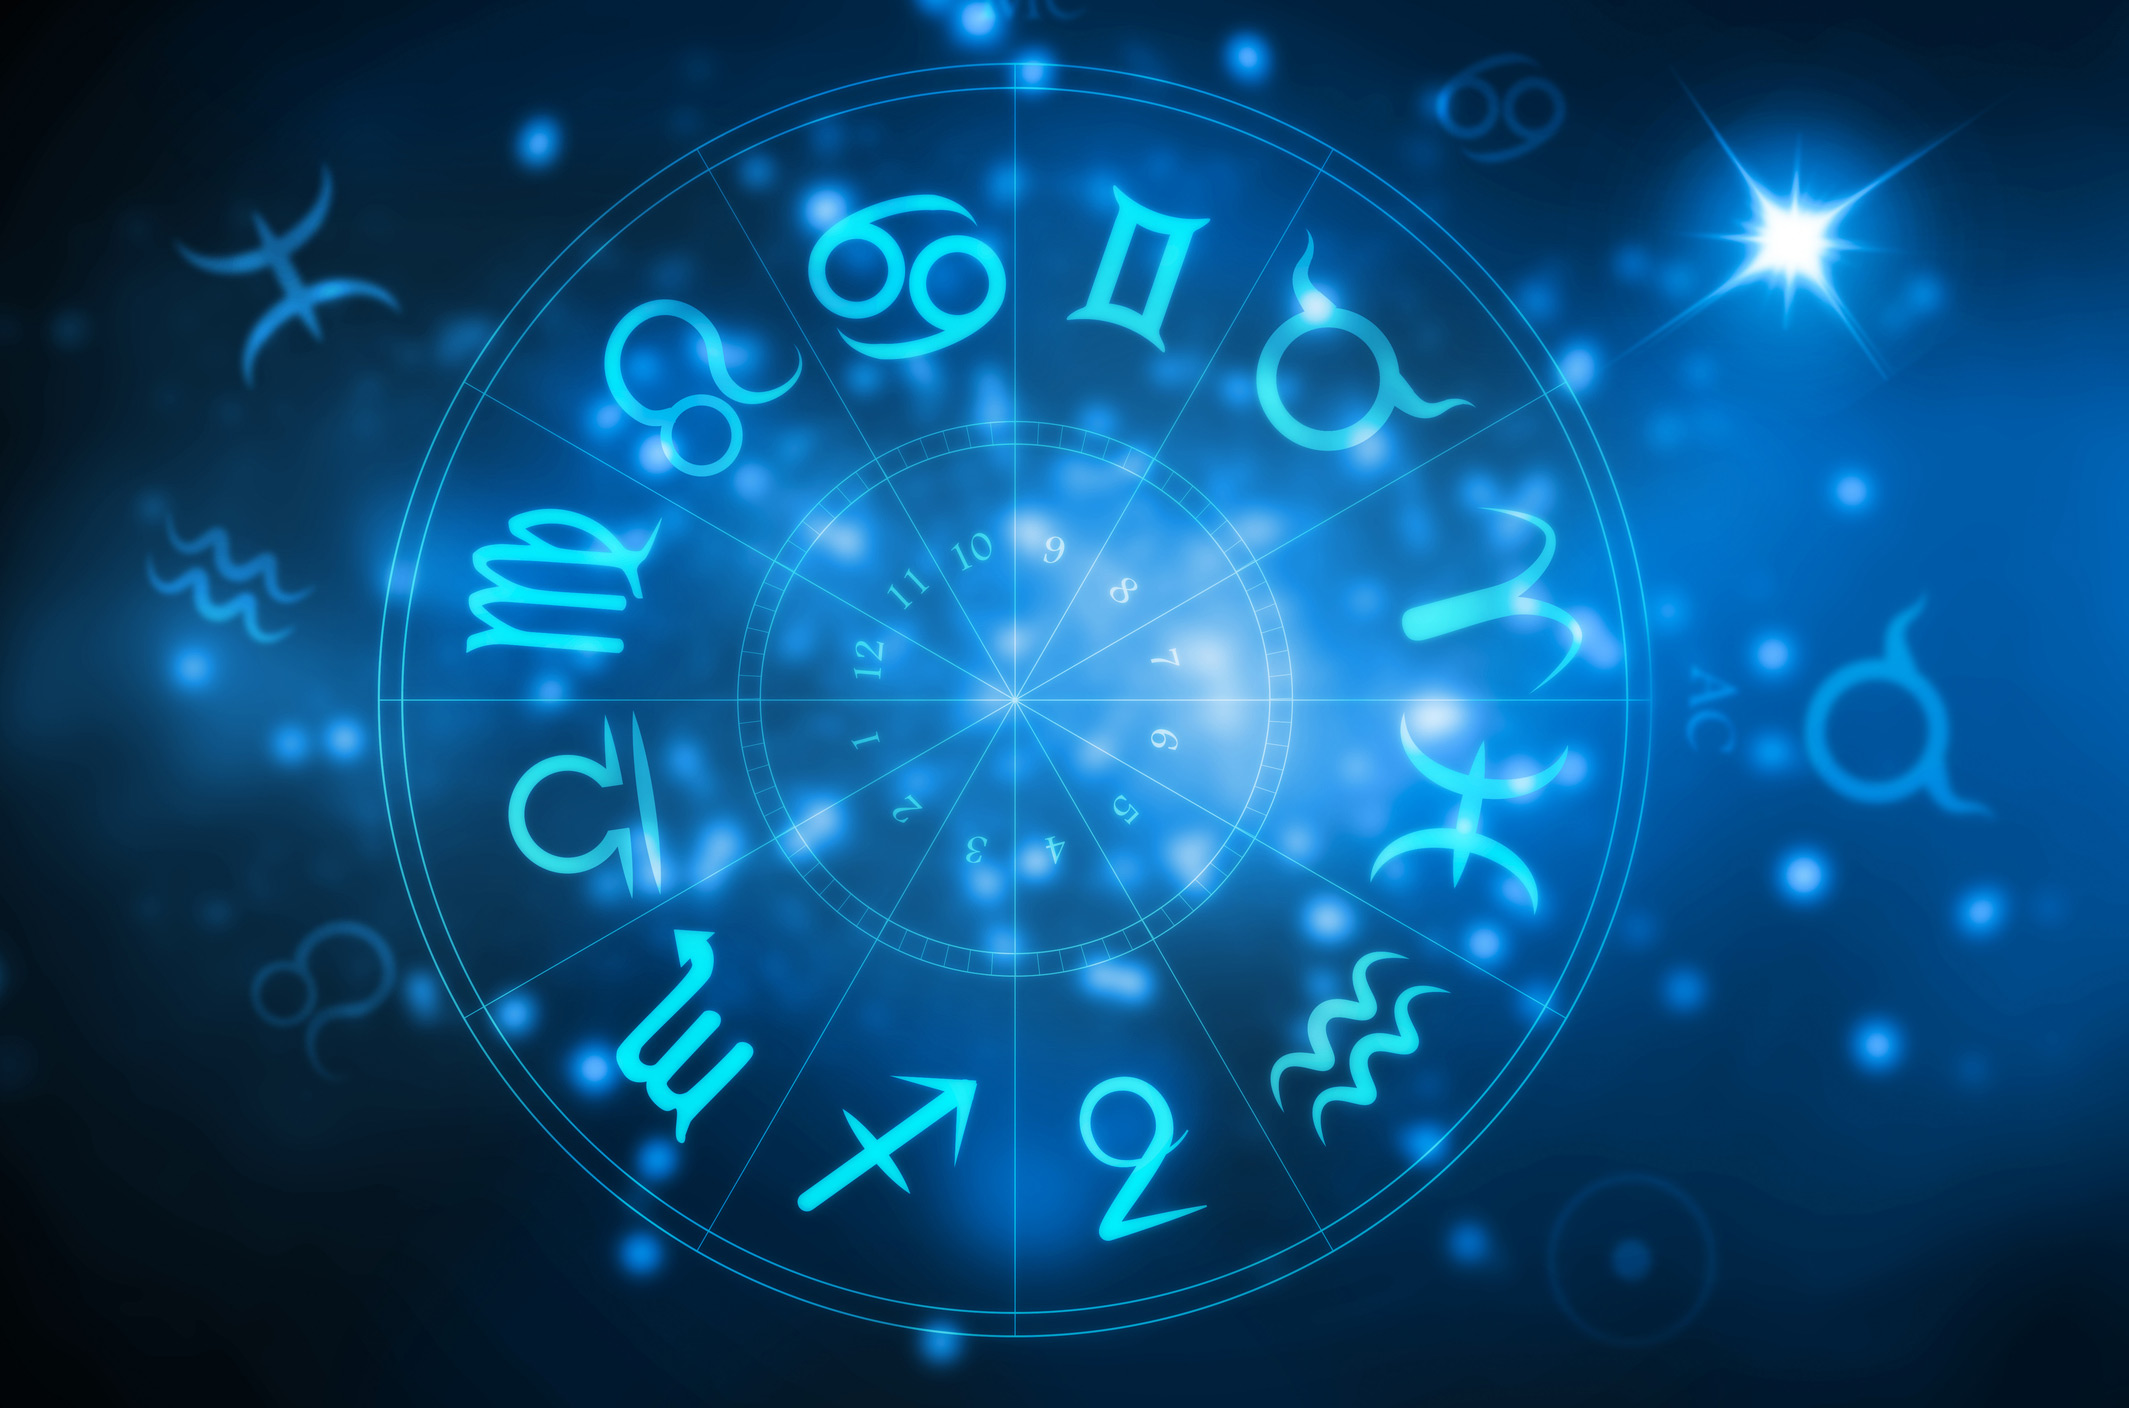 Types Of Free Yearly Horoscope Readings And Where To Find Them